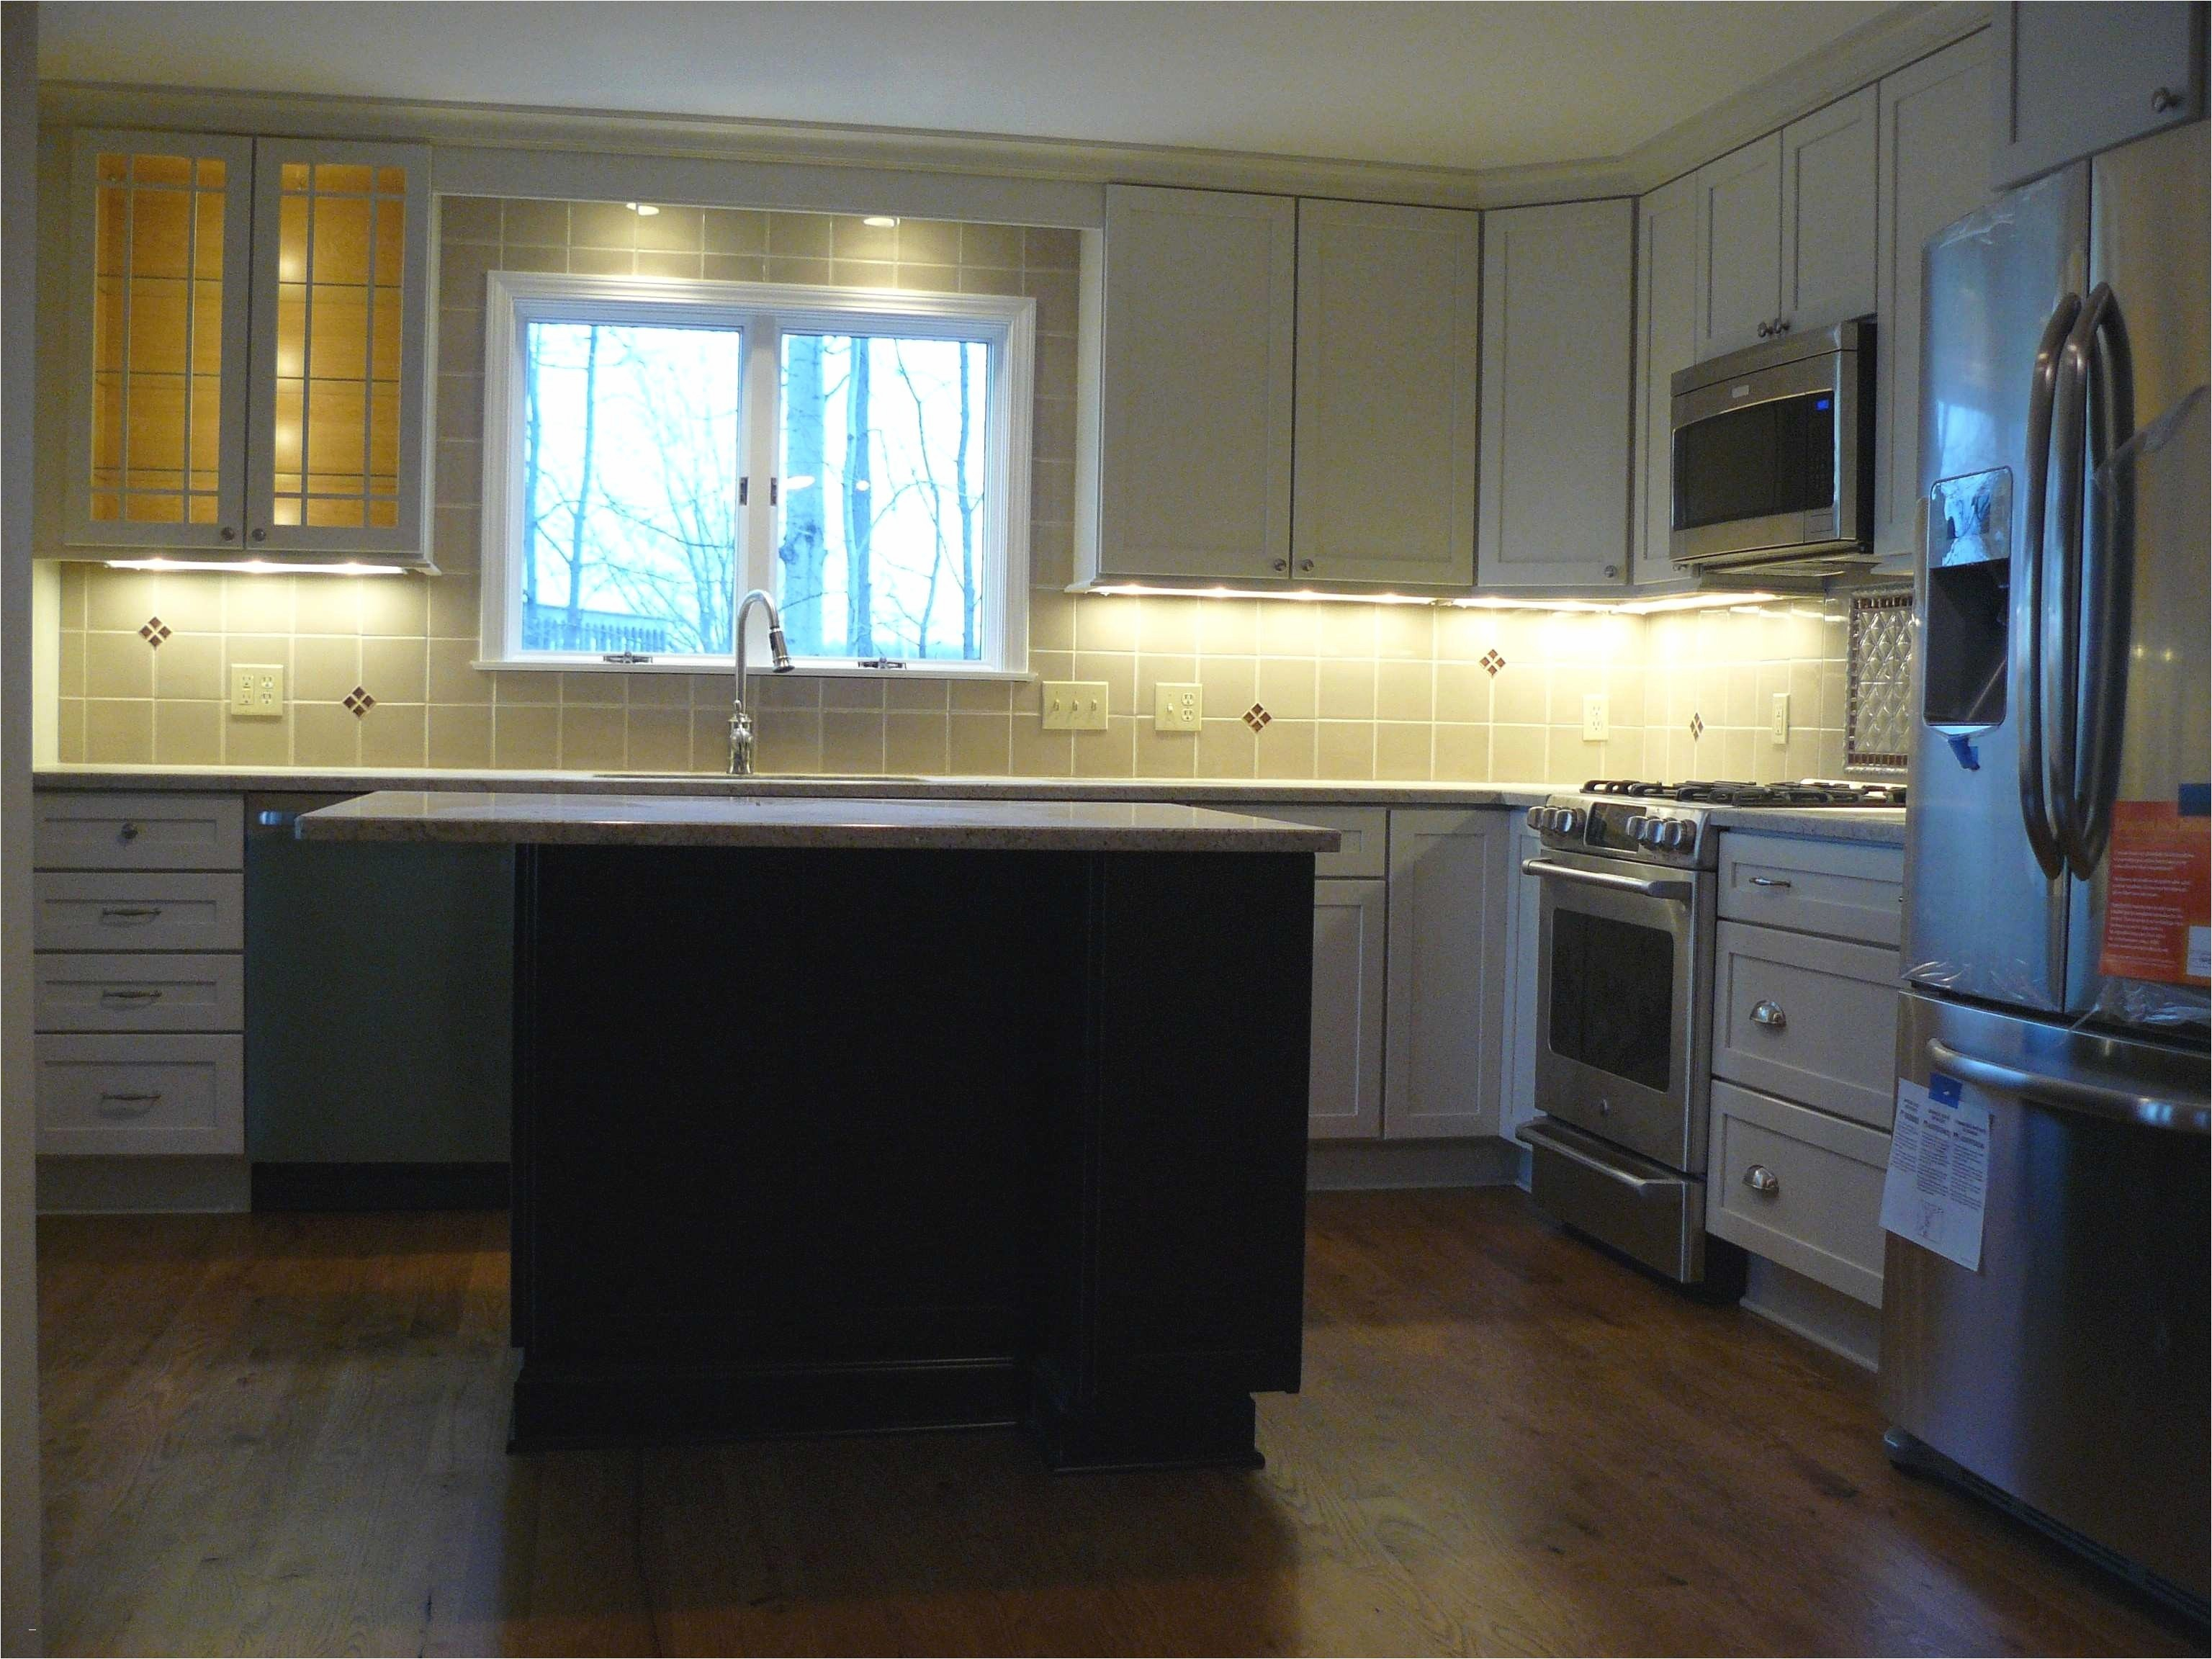 Brookhaven Cabinets Replacement Parts Wood Kitchen Cabinets Best Of 25 Elegant Brookhaven Kitchen Cabinets